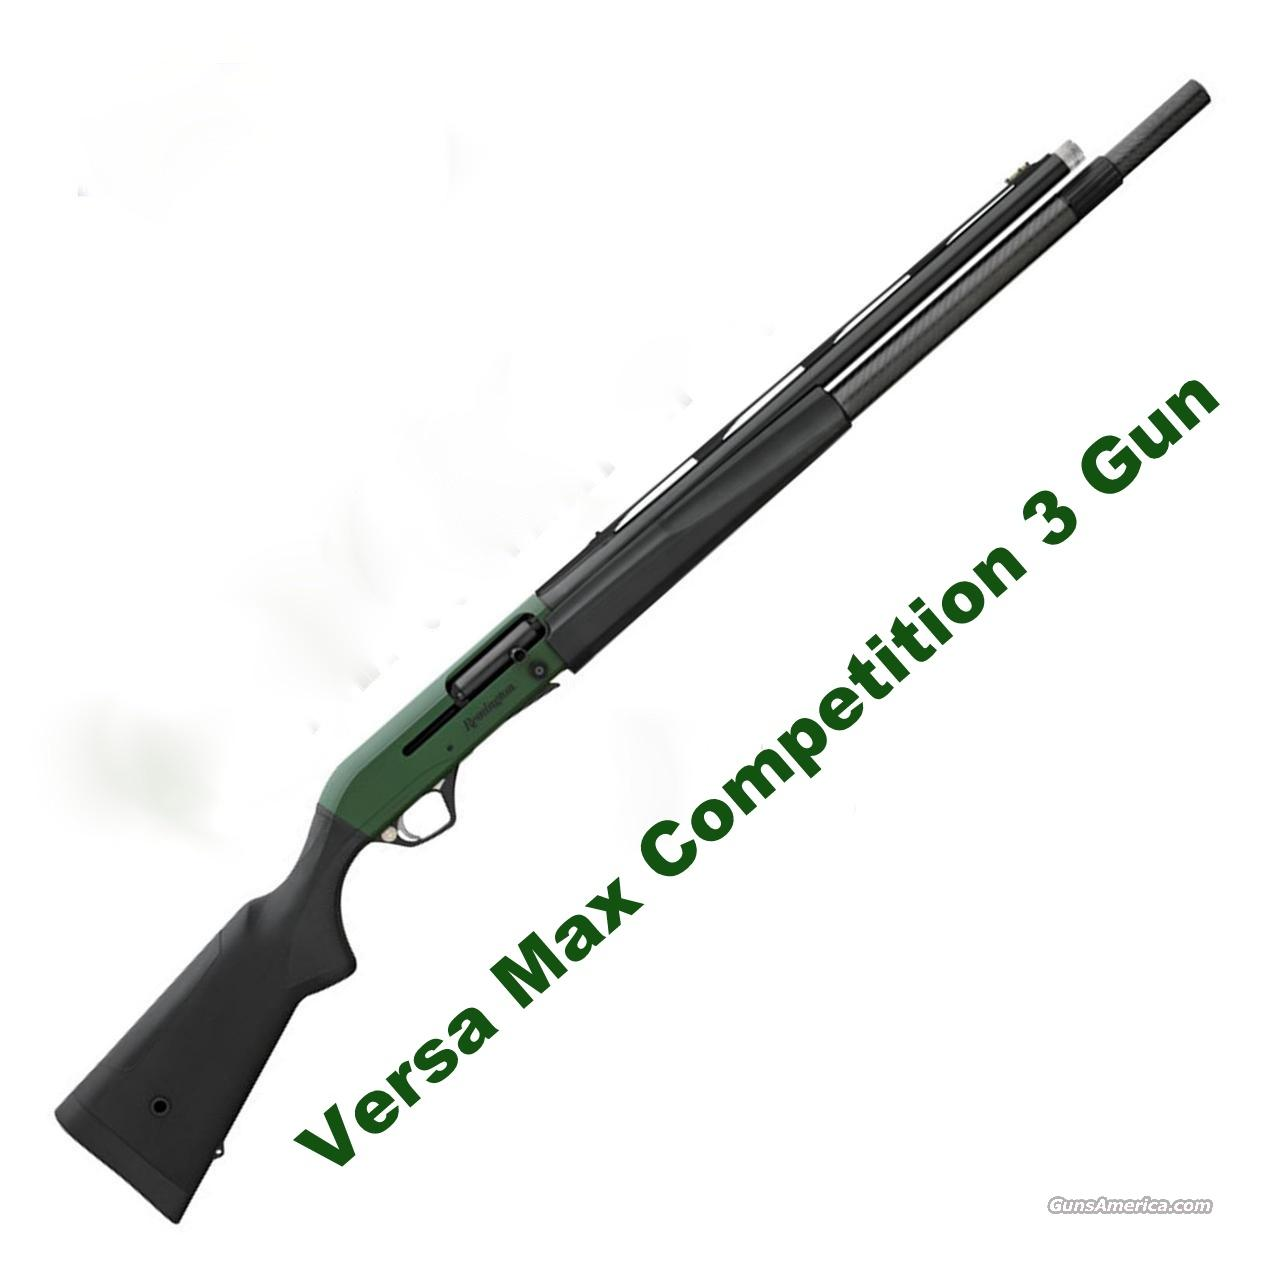 Remington Versa Max Competition 3 Gun OD Green 10+1 Carbon Fiber XS Sights 81029 *NEW*    Guns > Shotguns > Remington Shotguns  > Autoloaders > Tactical